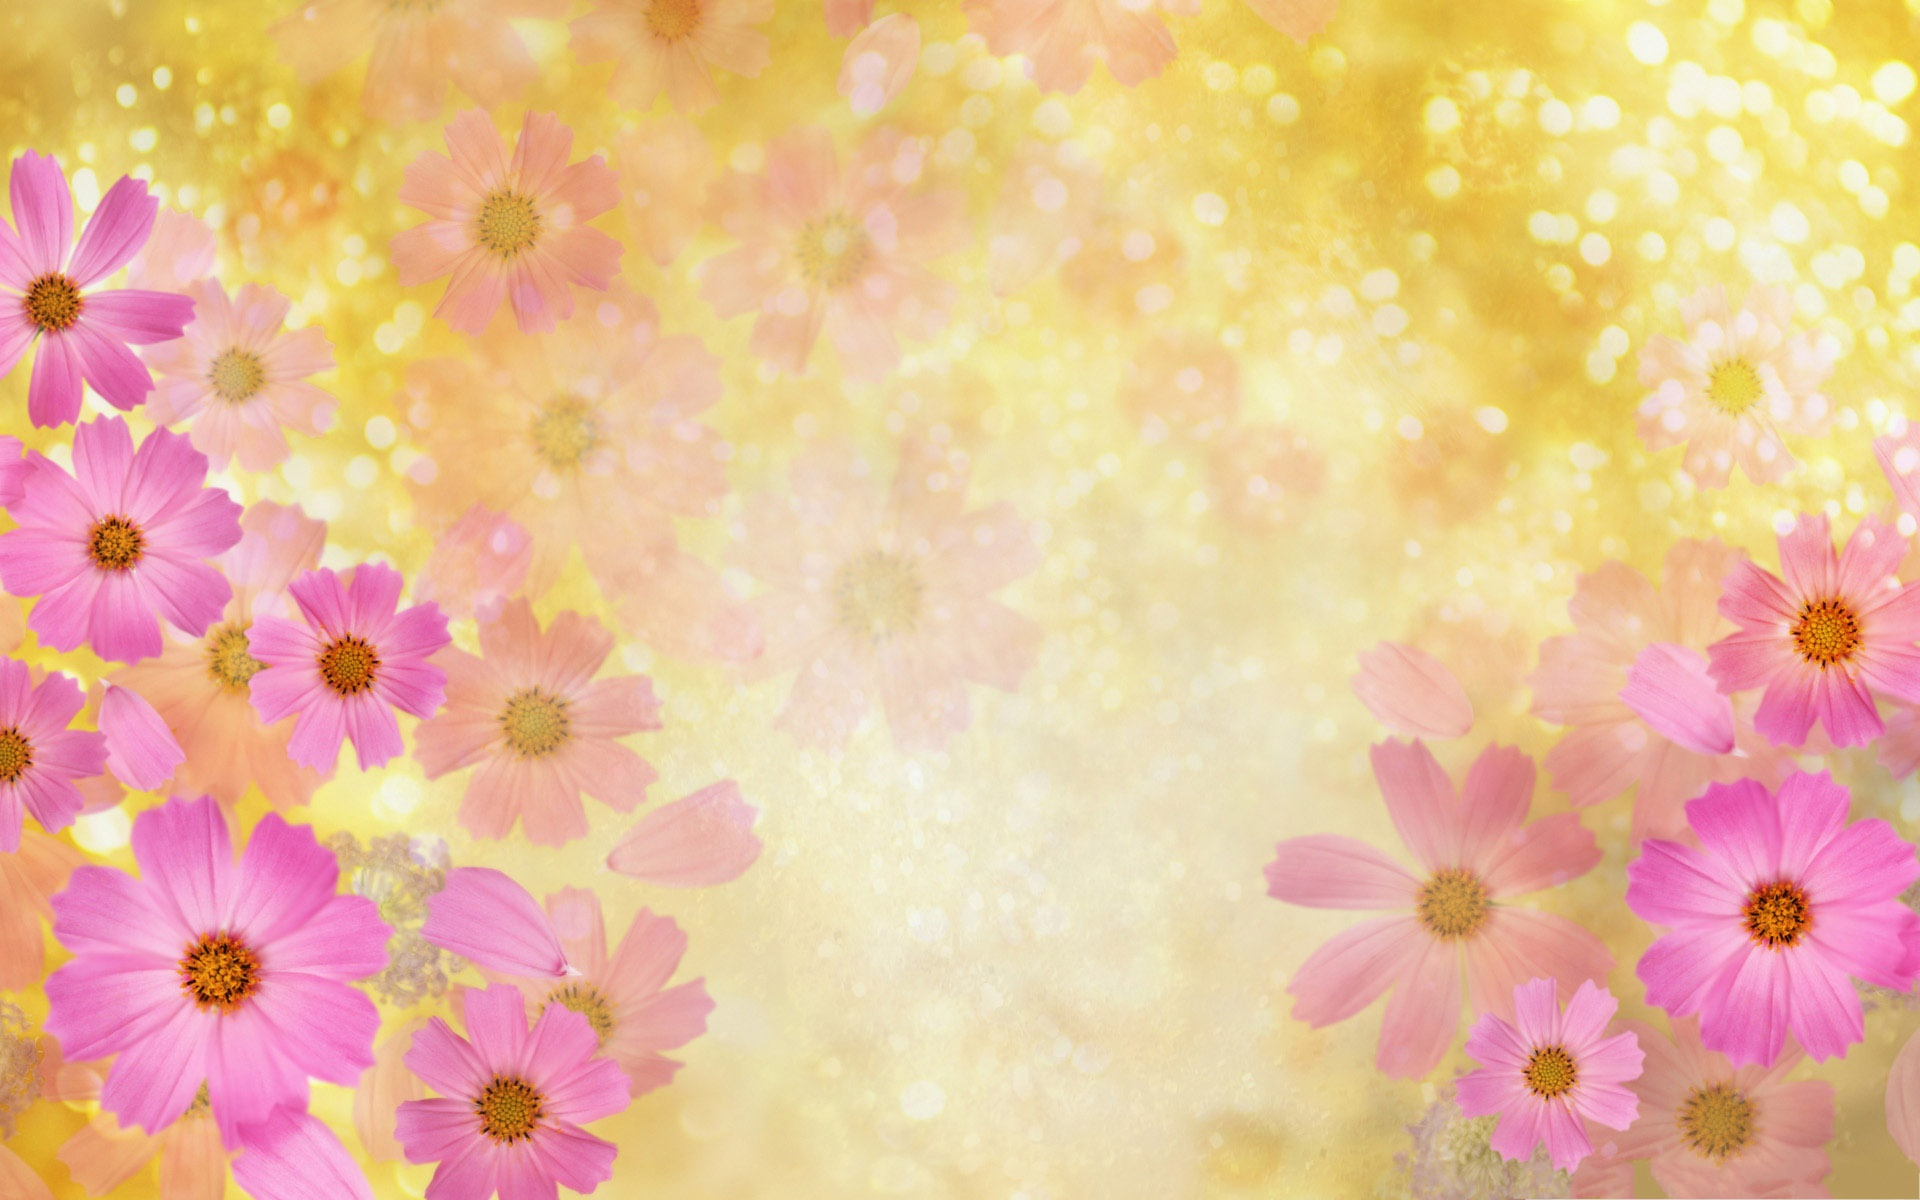 click to free download the wallpaper--Pink Flowers Picture, Beautiful Flowers in Bloom, Golden Background 1920X1200 free wallpaper download